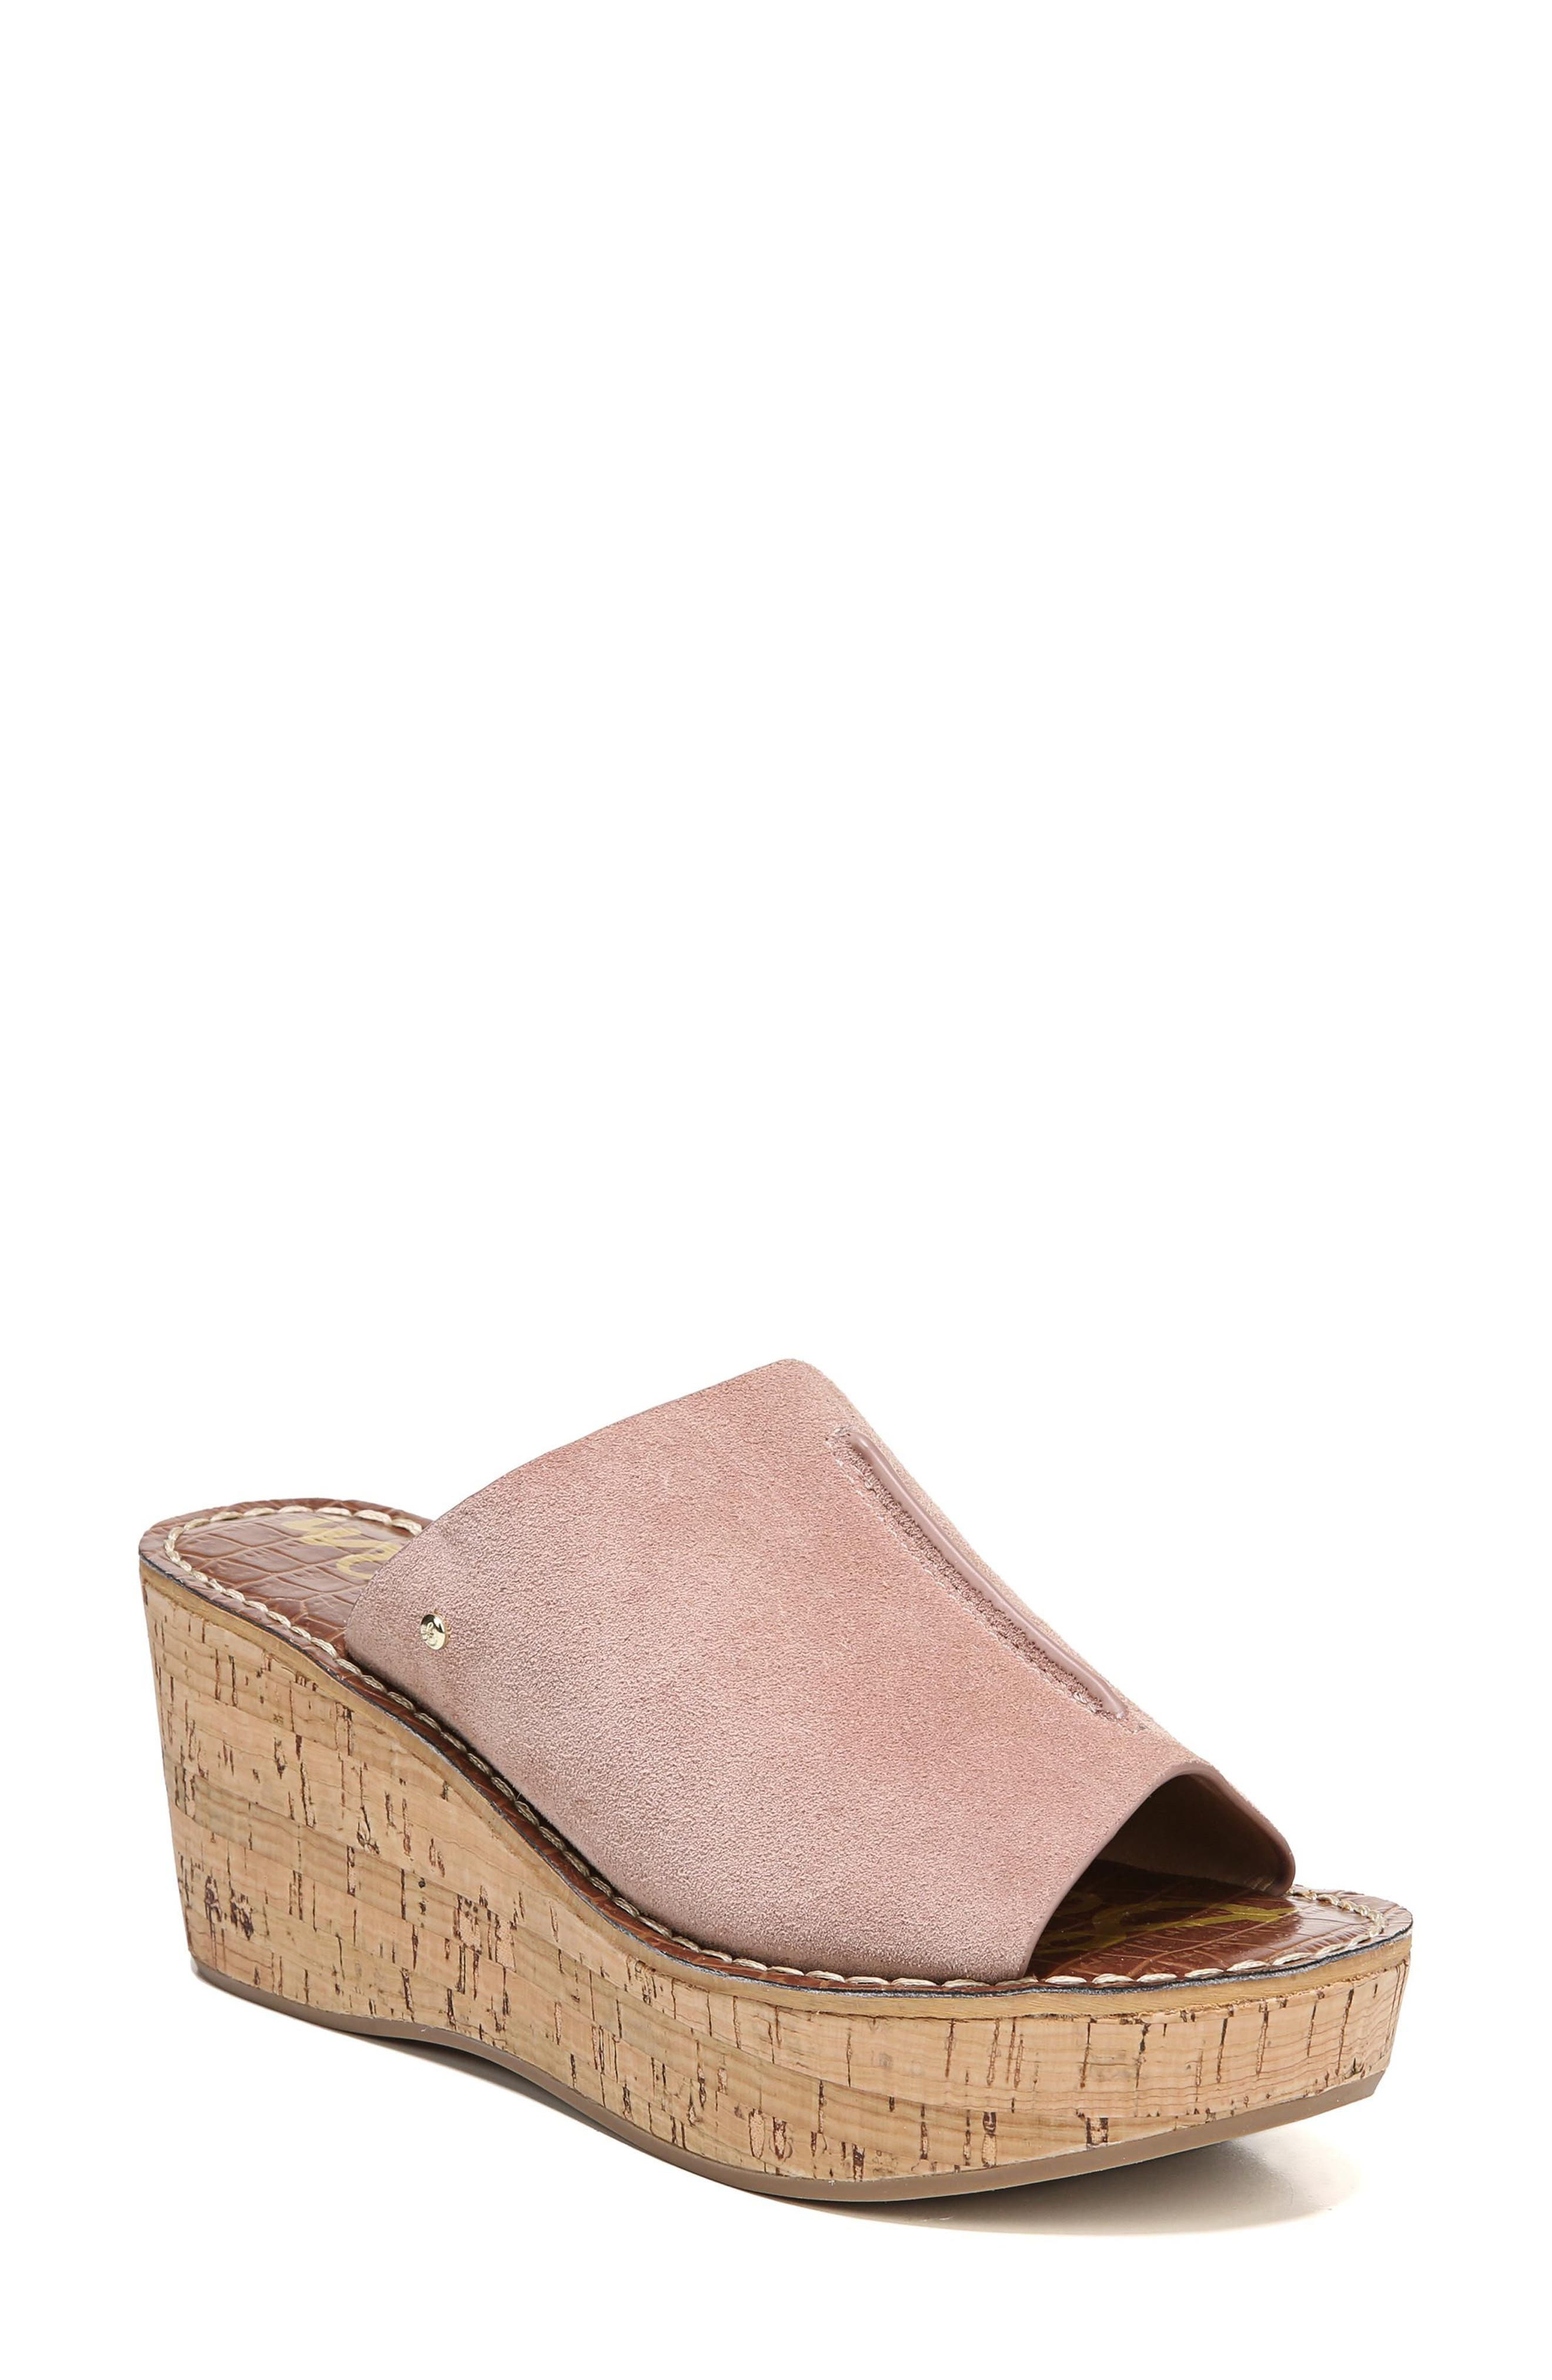 Ranger Platform Sandal,                             Main thumbnail 1, color,                             Dusty Rose Suede